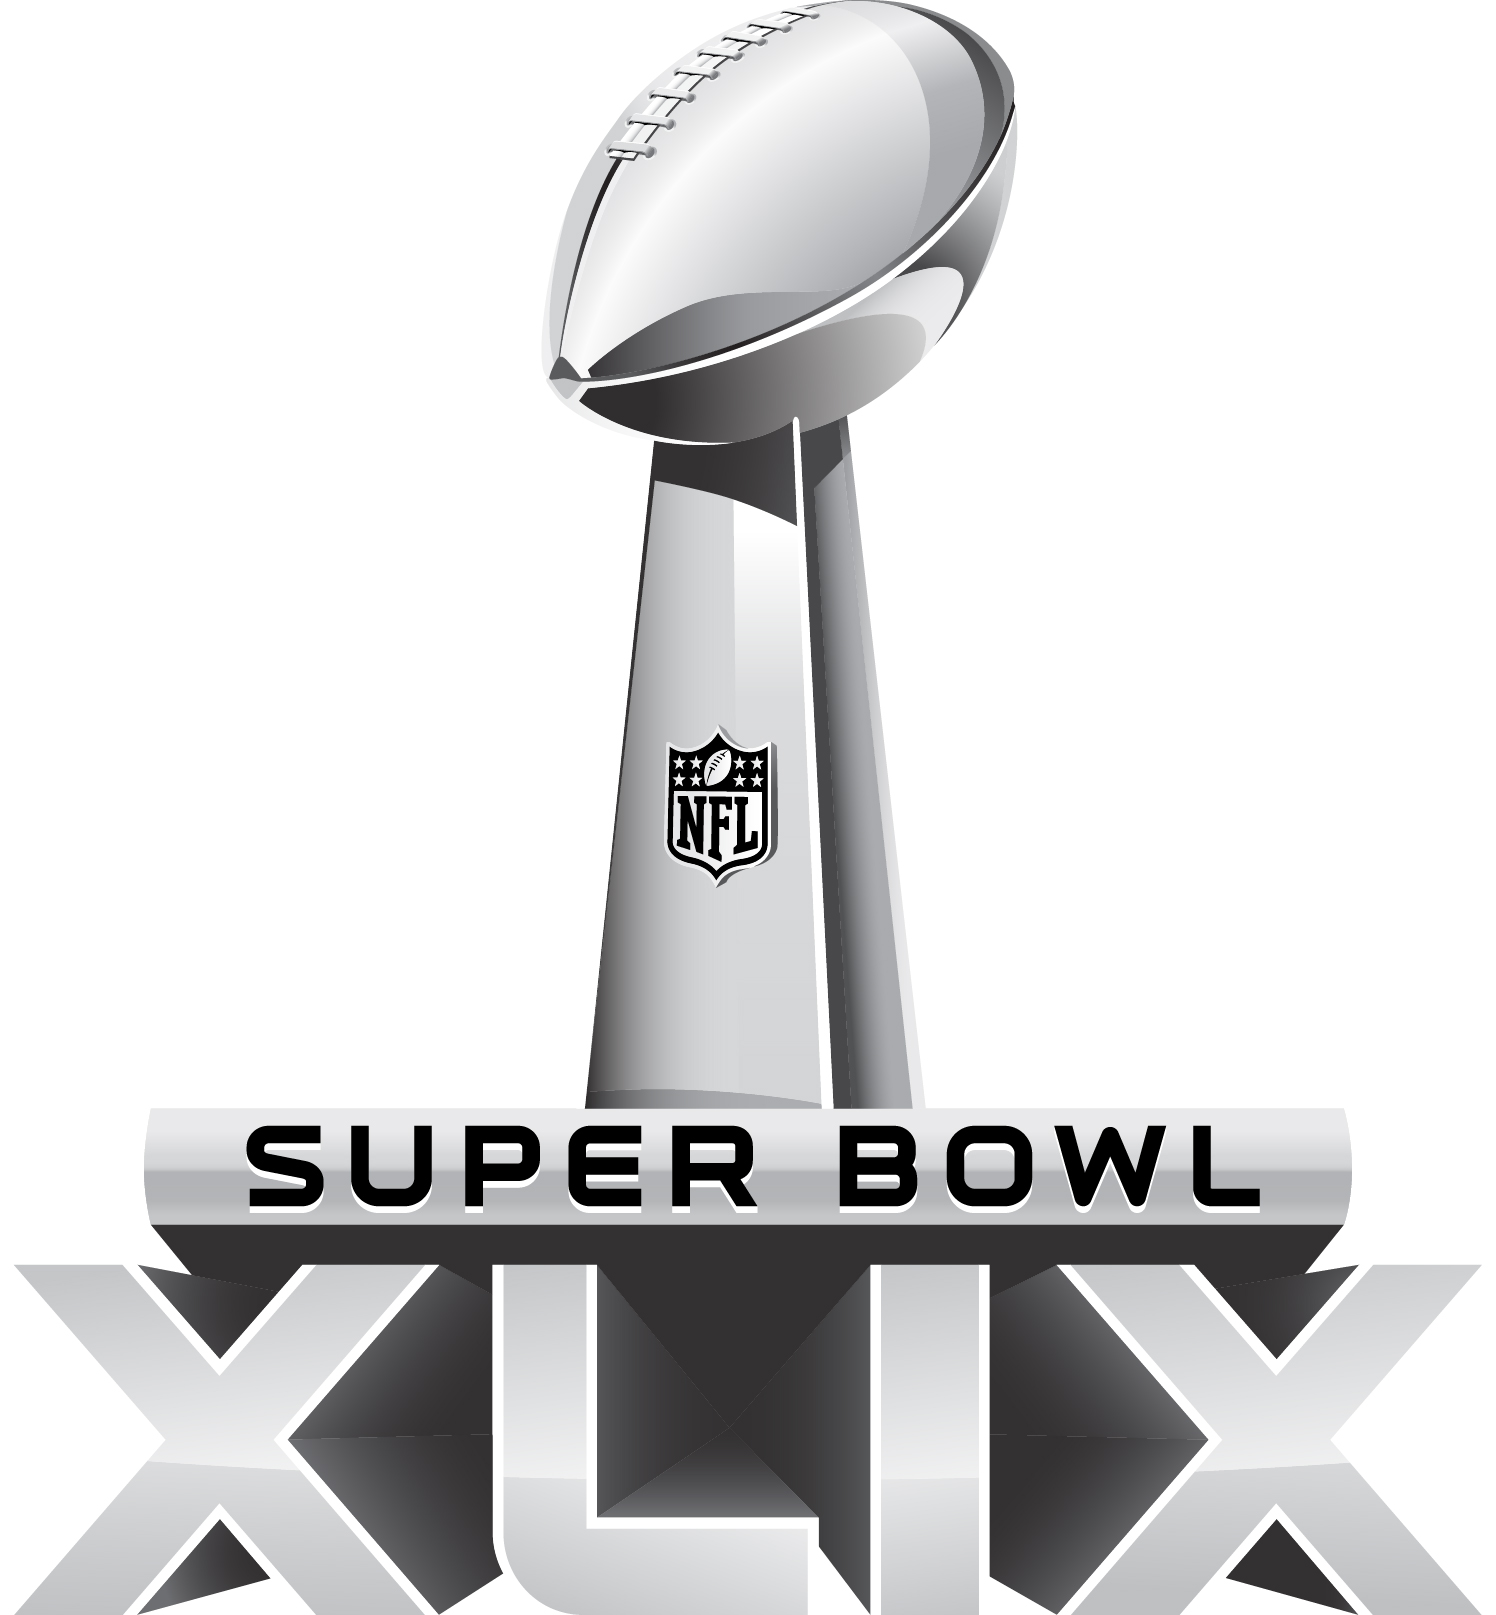 Only 3 apps you need to enjoy super bowl xlix the only 3 apps you need to enjoy super bowl xlix biocorpaavc